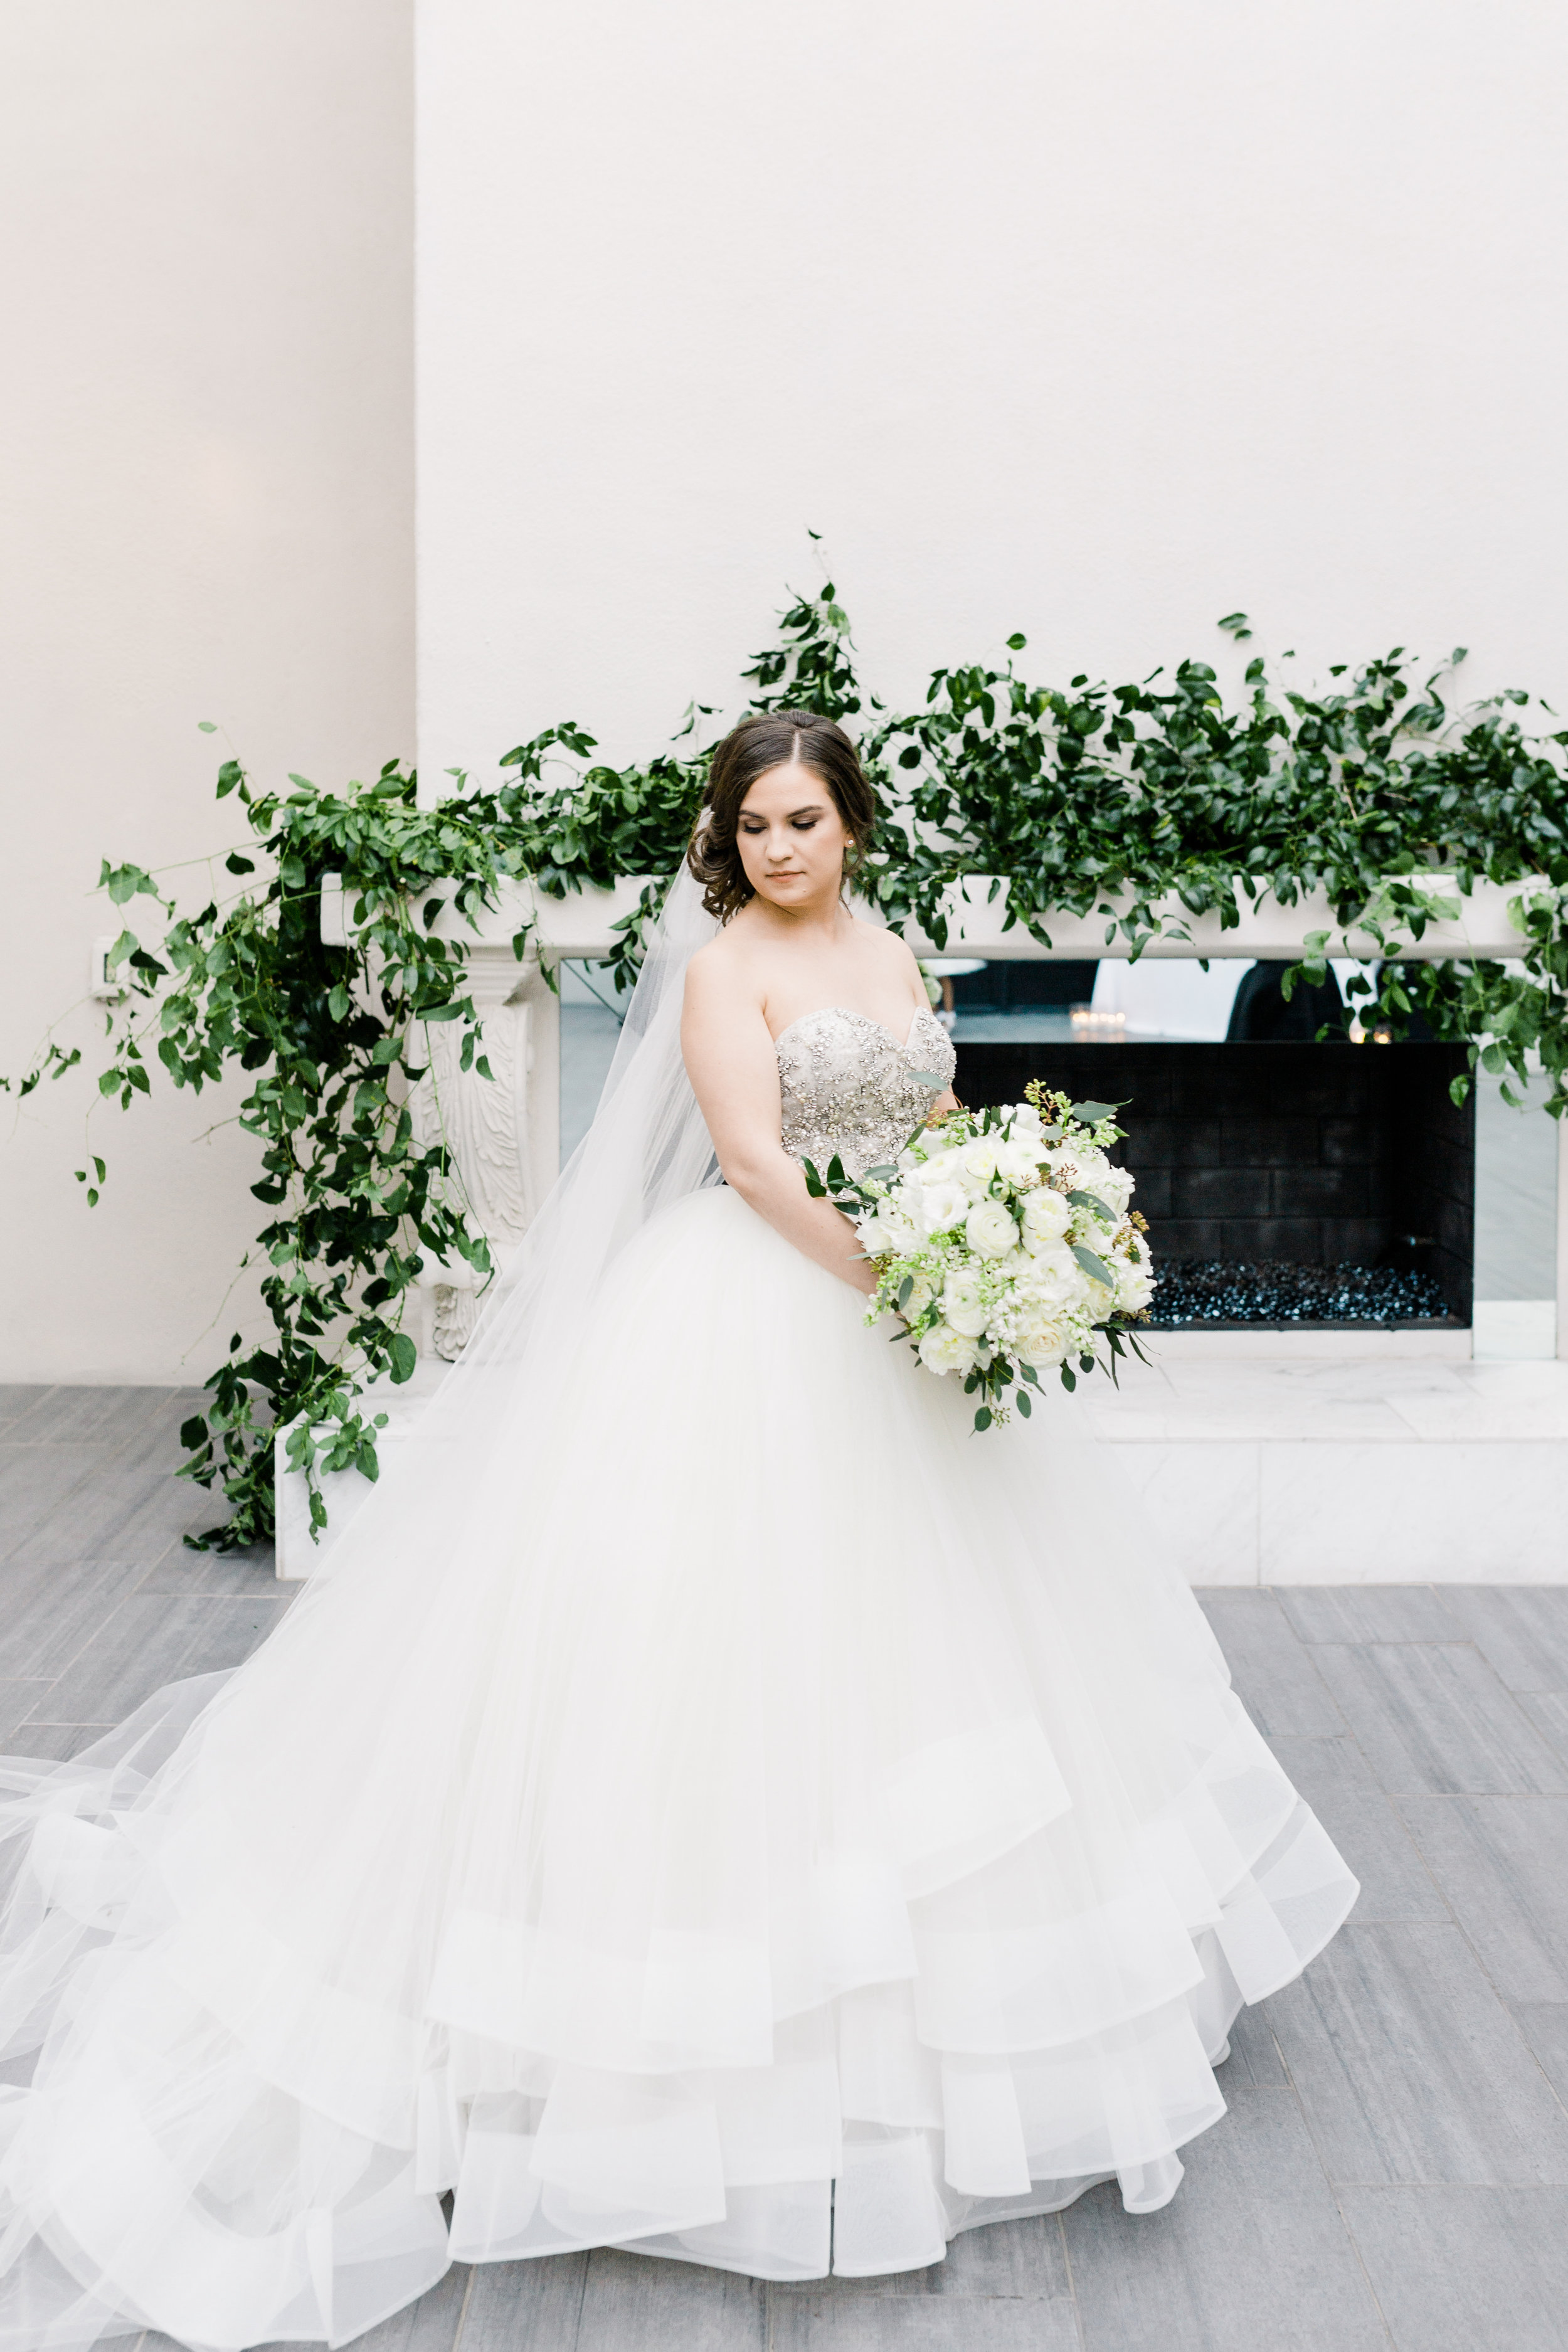 Taylor_and_Will_Soho63_BlackTieWedding-Andrew_and_Ada_Photography_2019-4394.jpg